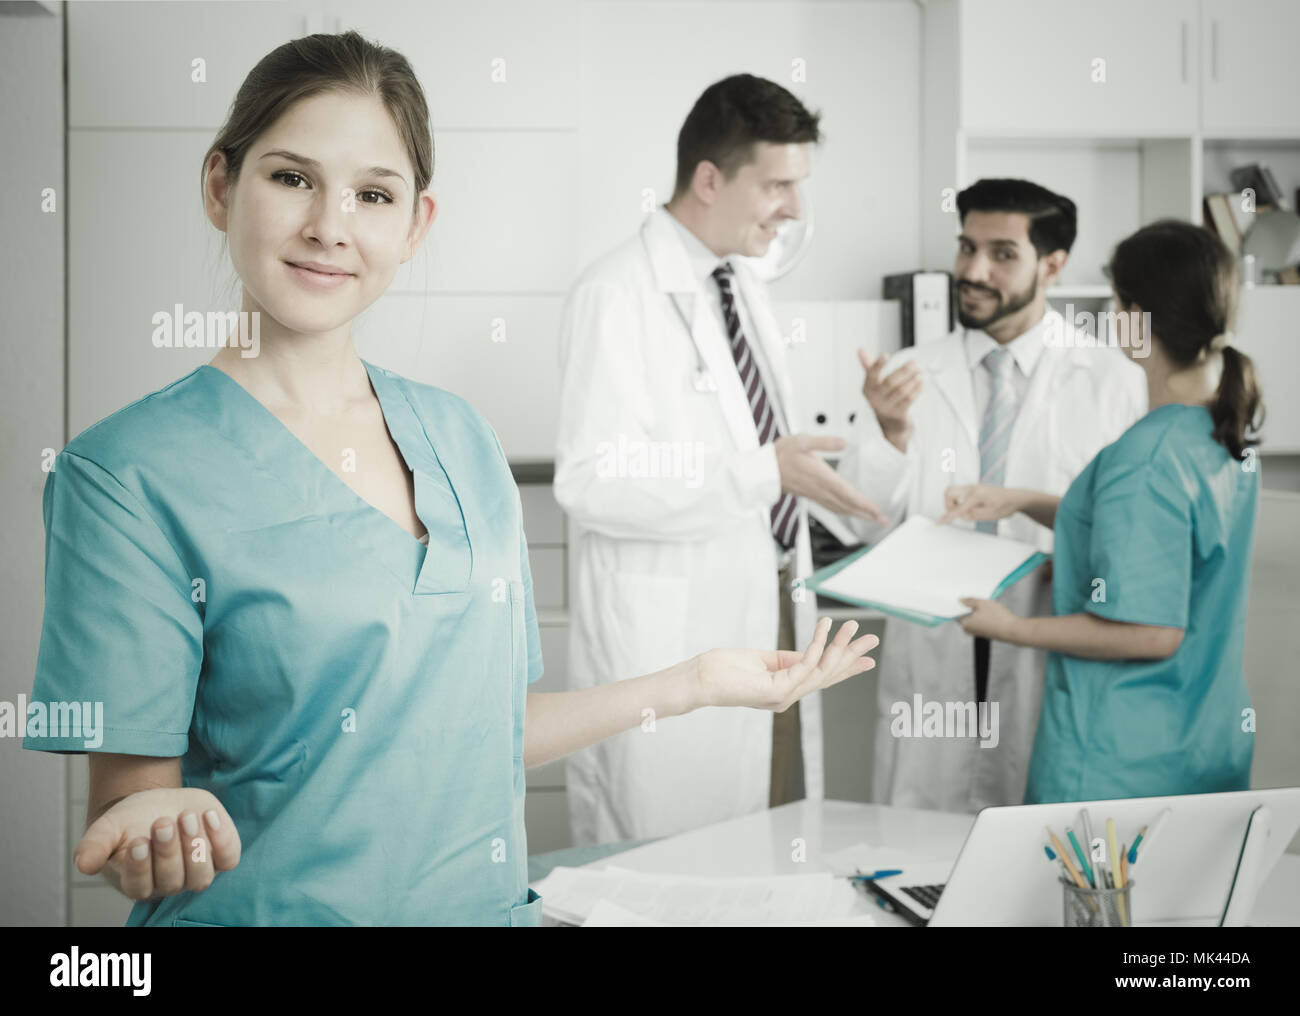 Young smiling female doctor welcoming patient to clinic - Stock Image